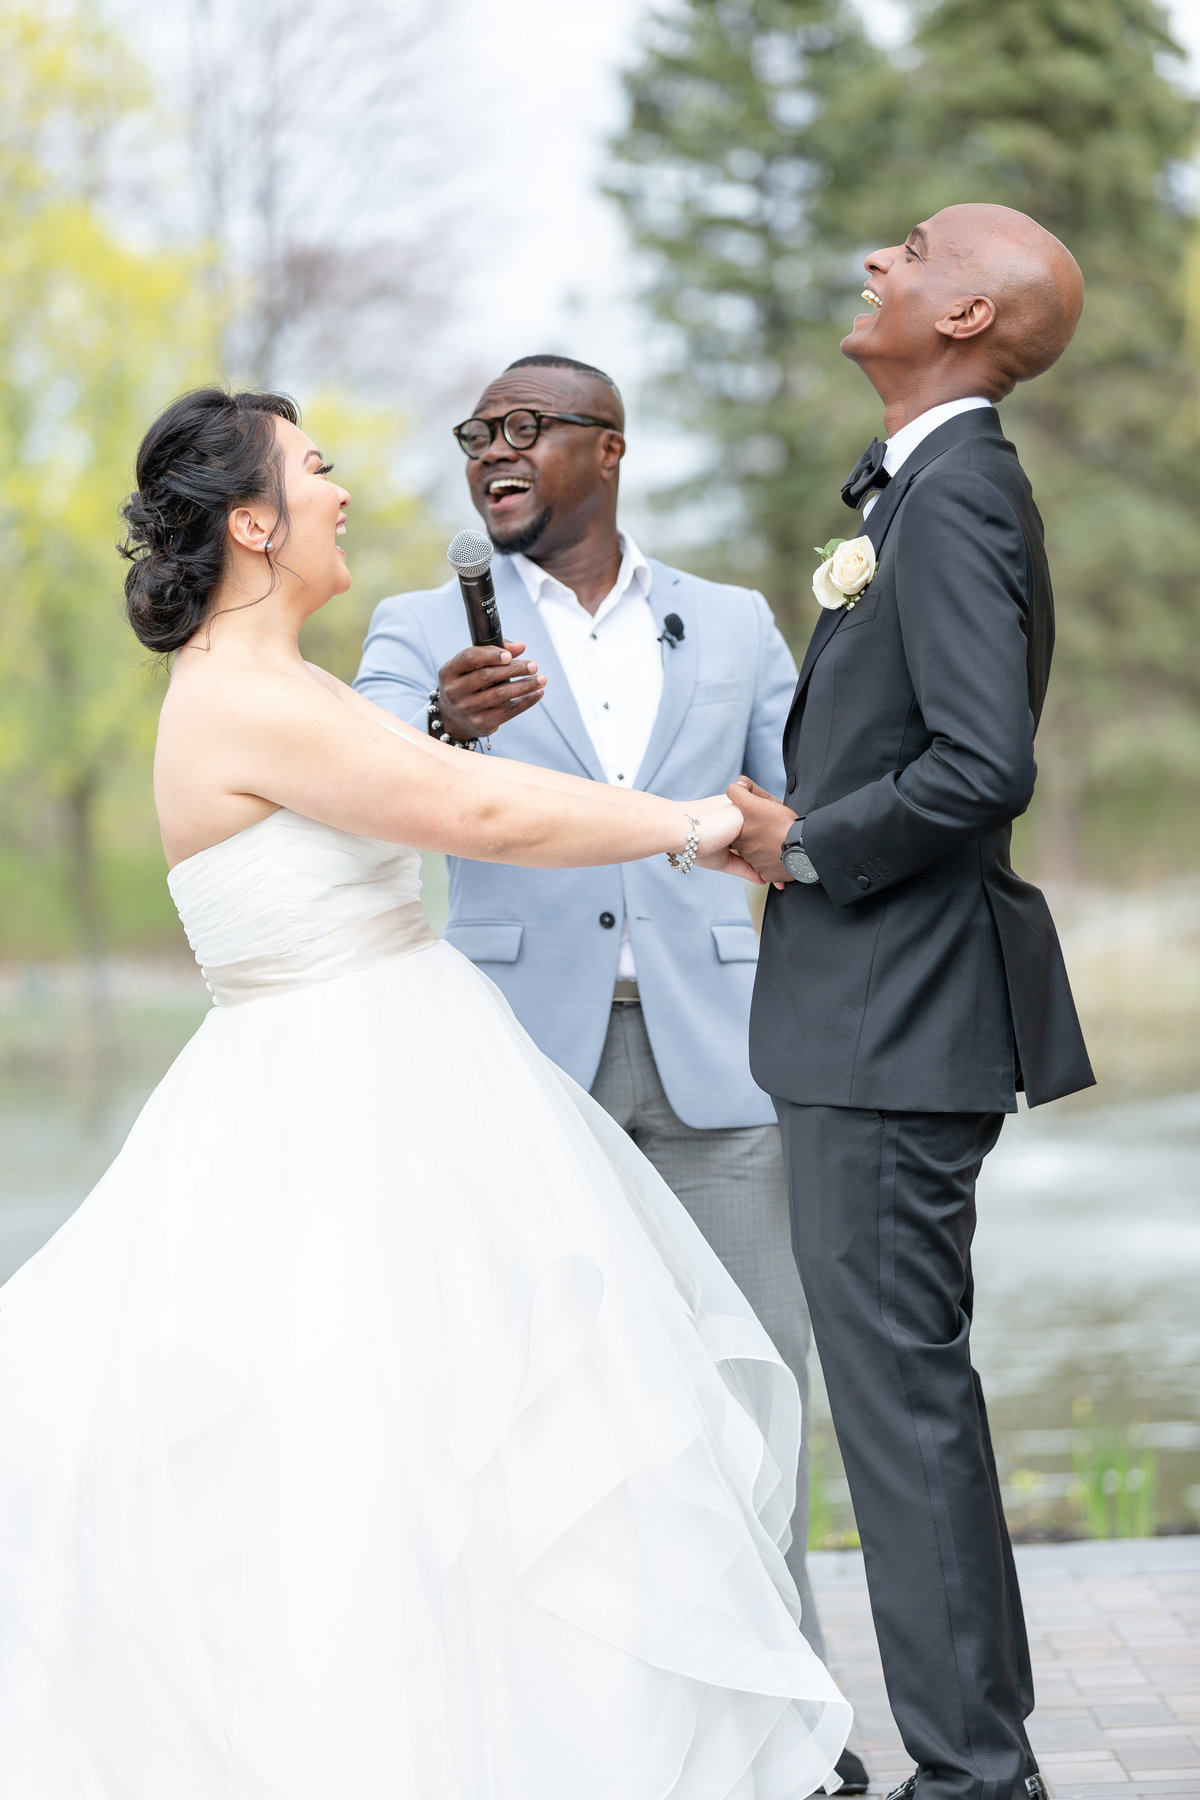 arlington-estae-Vicky-and-Emmanuel-Wedding-Ceremony-Chris-and-Micaela-Photography-204